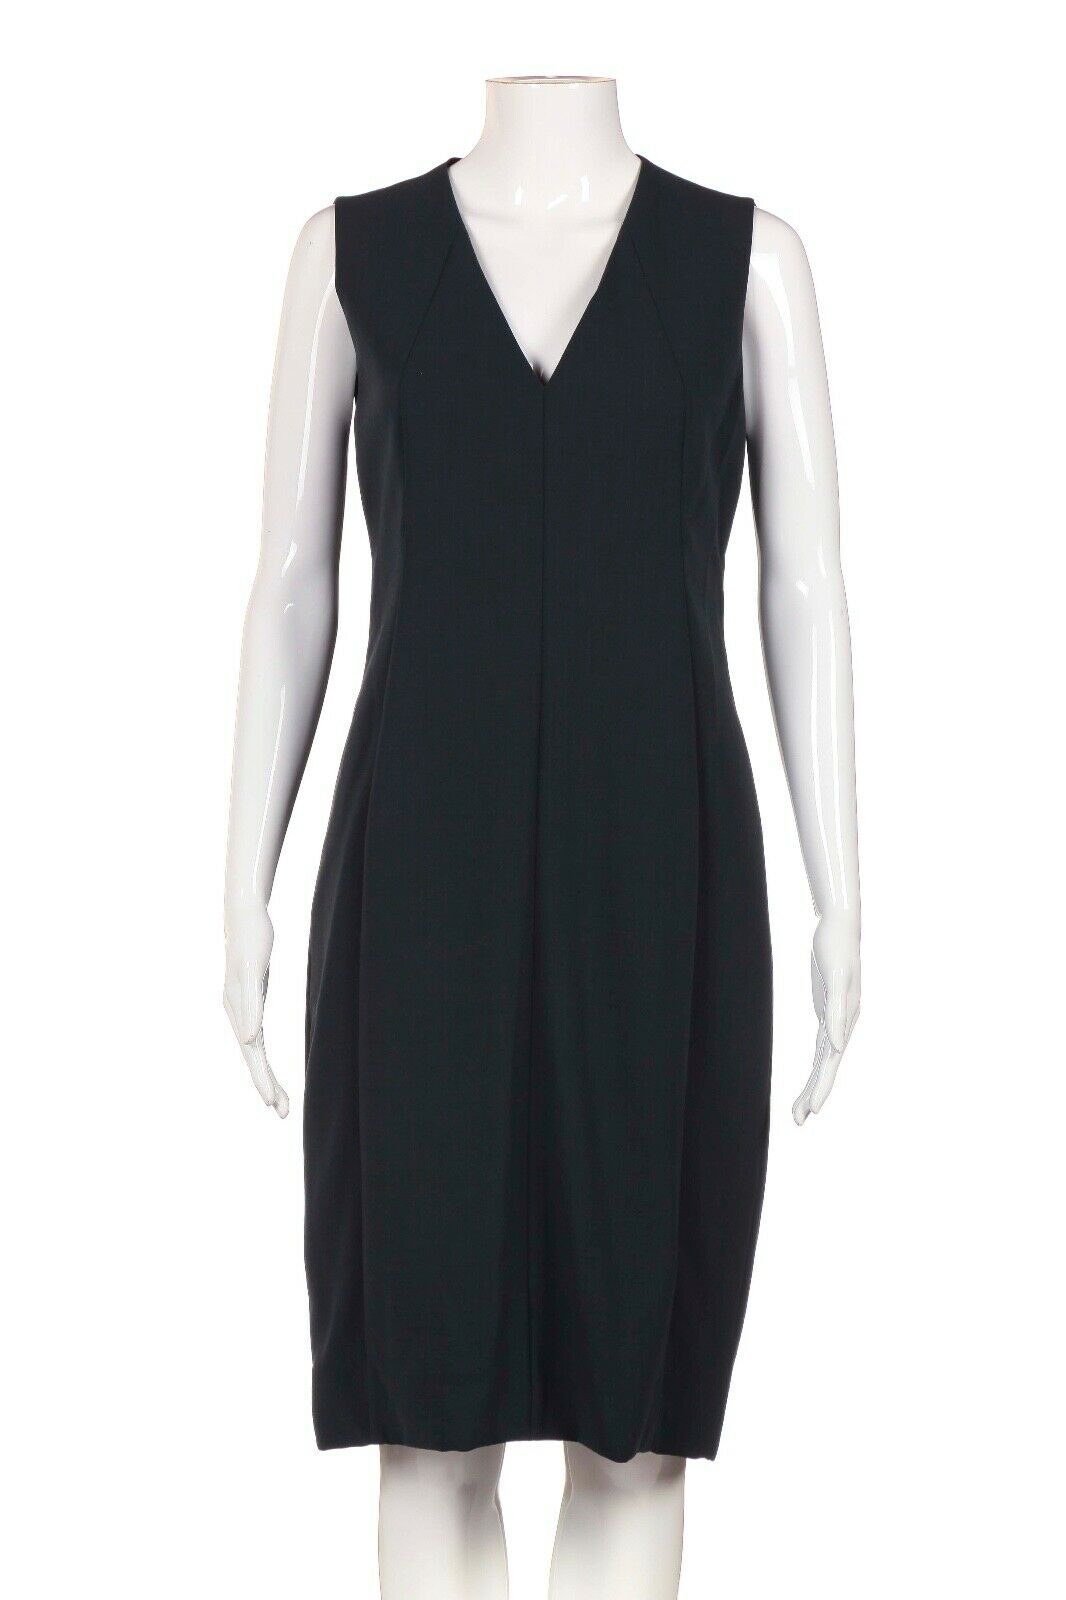 AKRIS Sheath Wool Blend  Dress Size 6